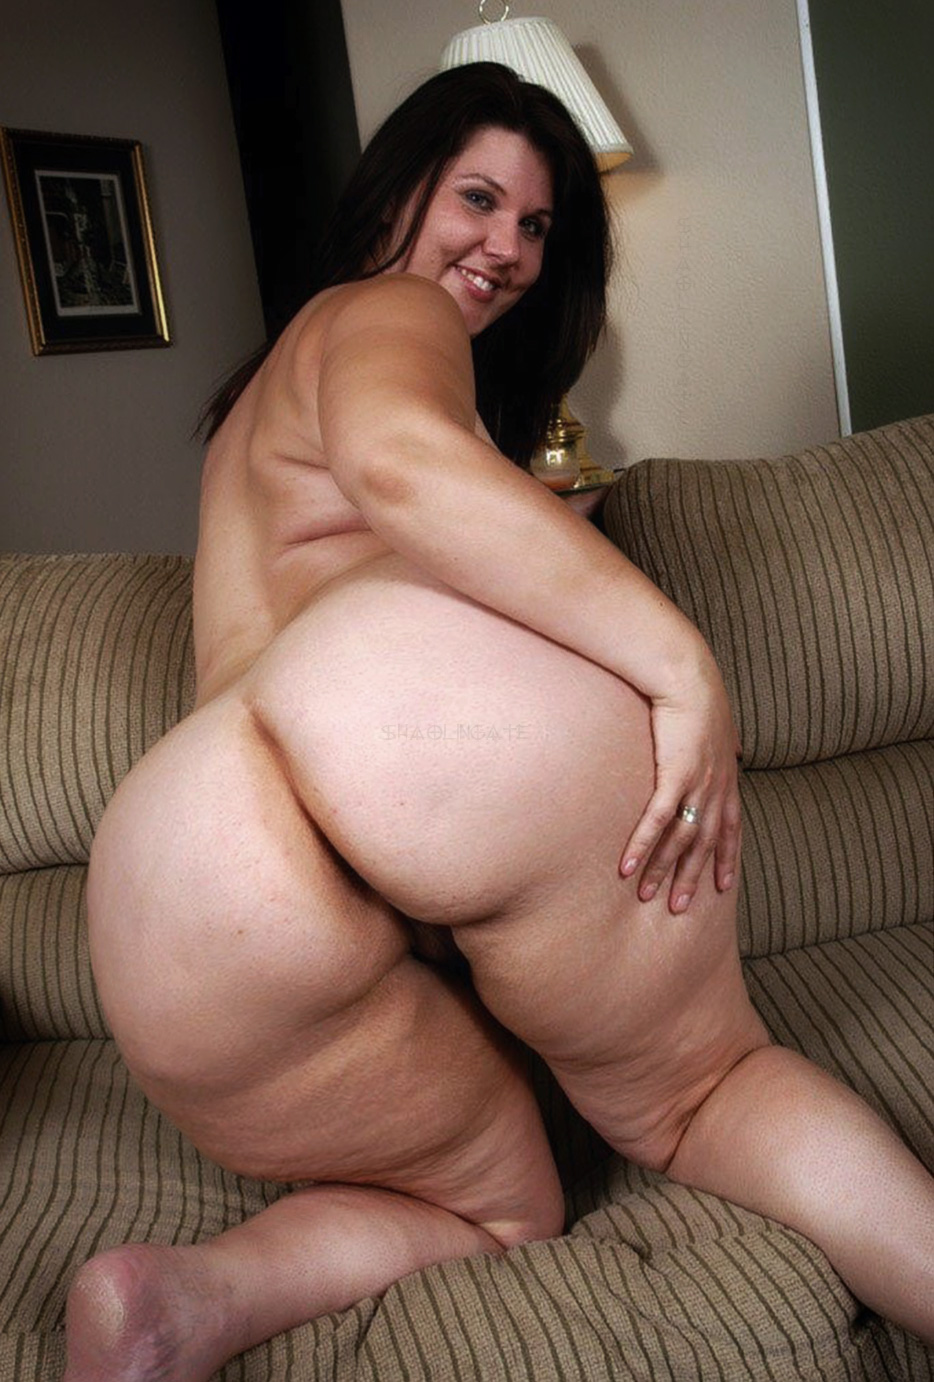 mums Hot ass nude with big